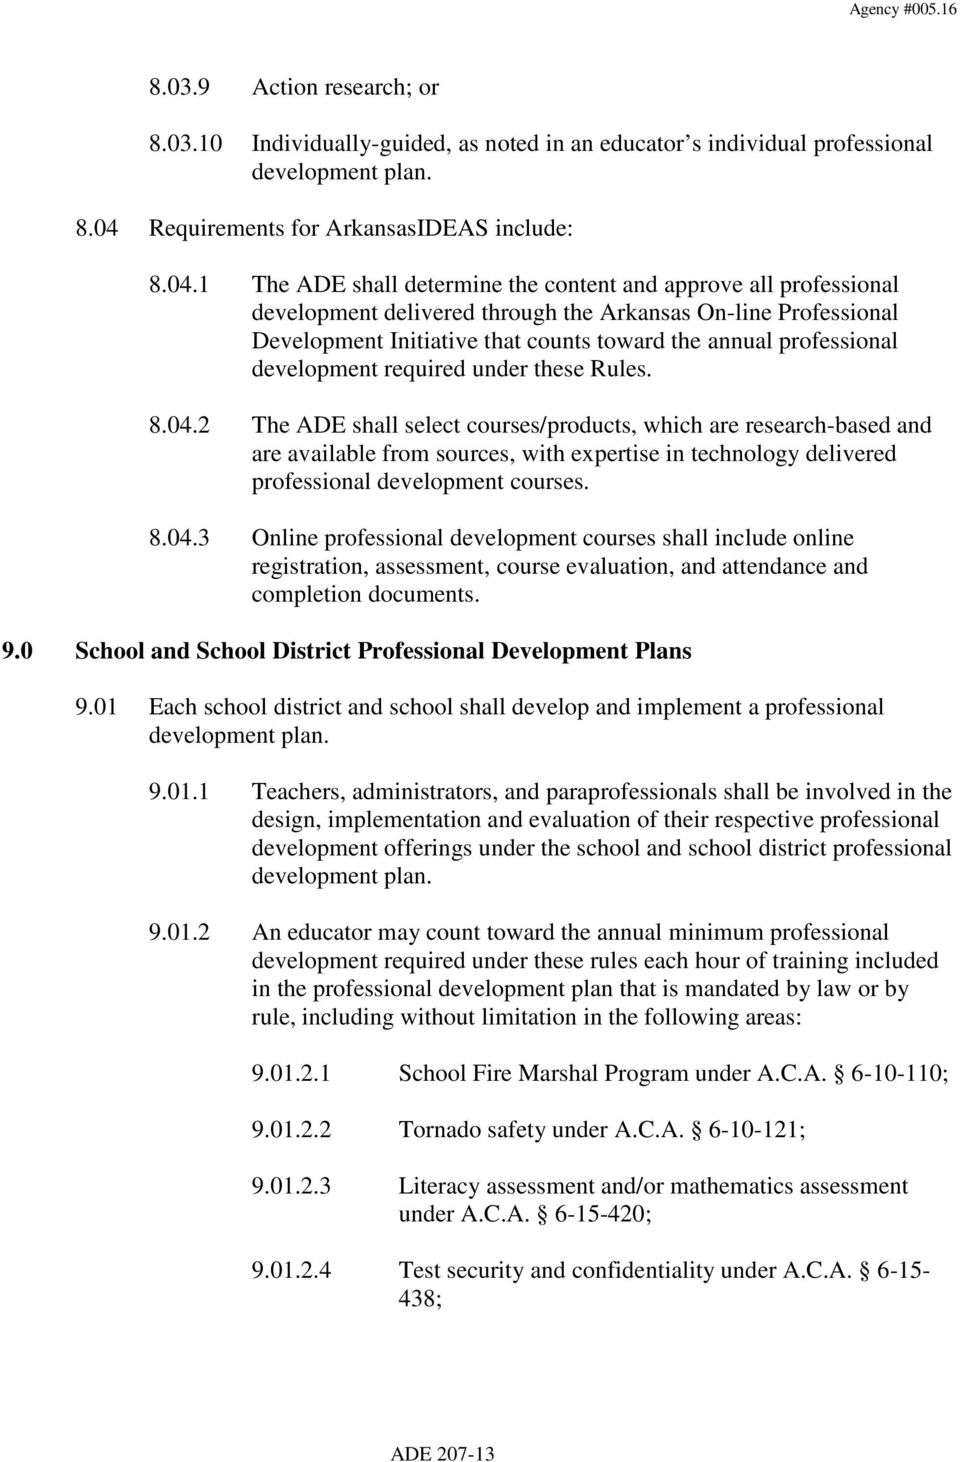 1 The ADE shall determine the content and approve all professional development delivered through the Arkansas On-line Professional Development Initiative that counts toward the annual professional